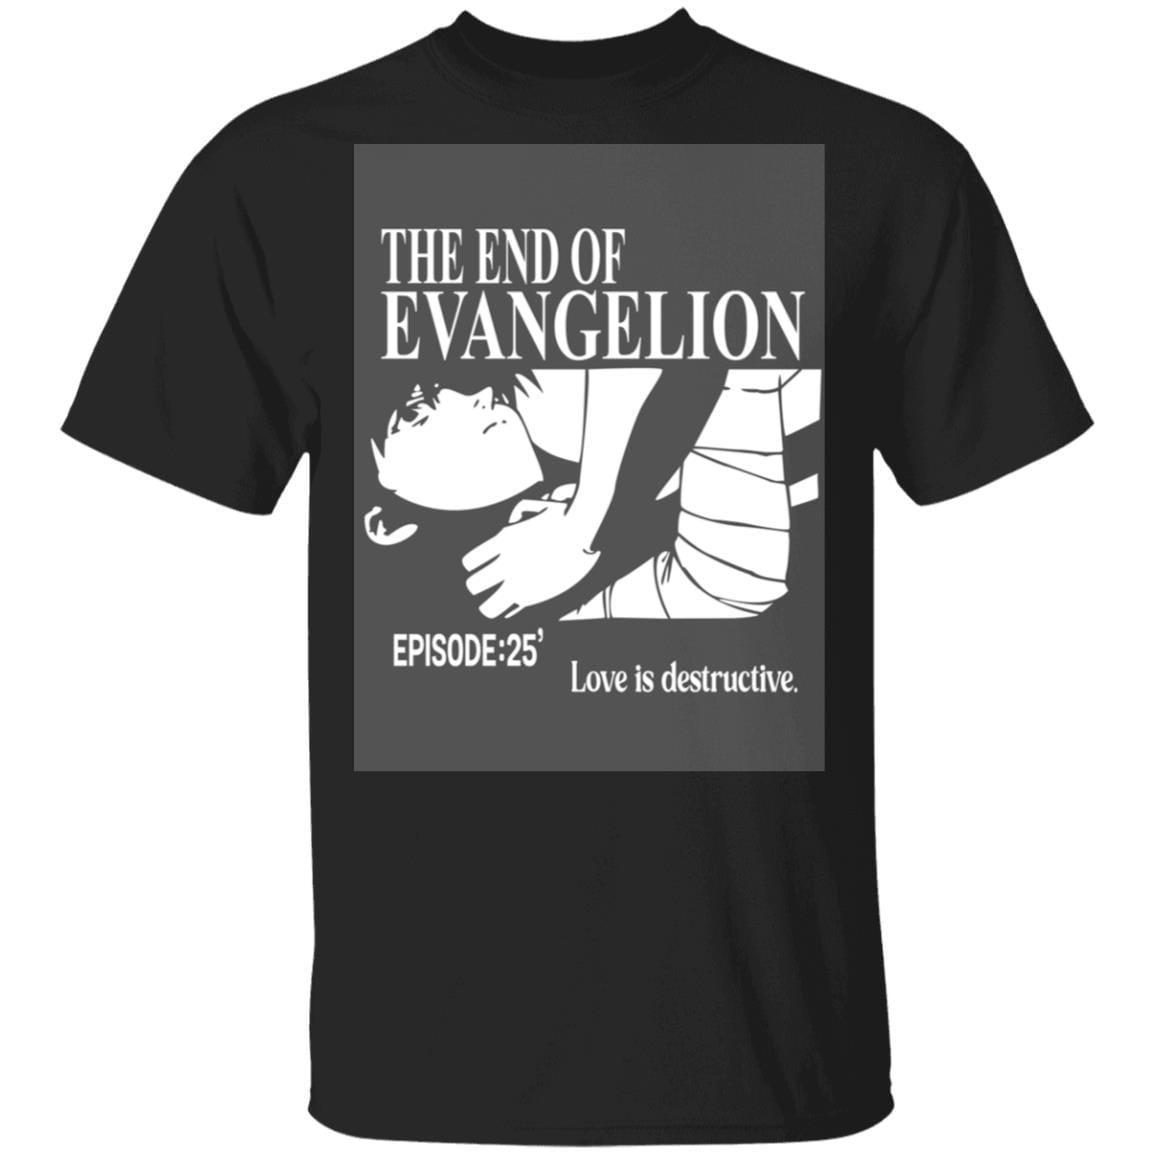 The End Of Evangelion Episode 25 Love Is Destructive T-Shirts, Hoodies 1049-9953-91821637-48144 - Tee Ript